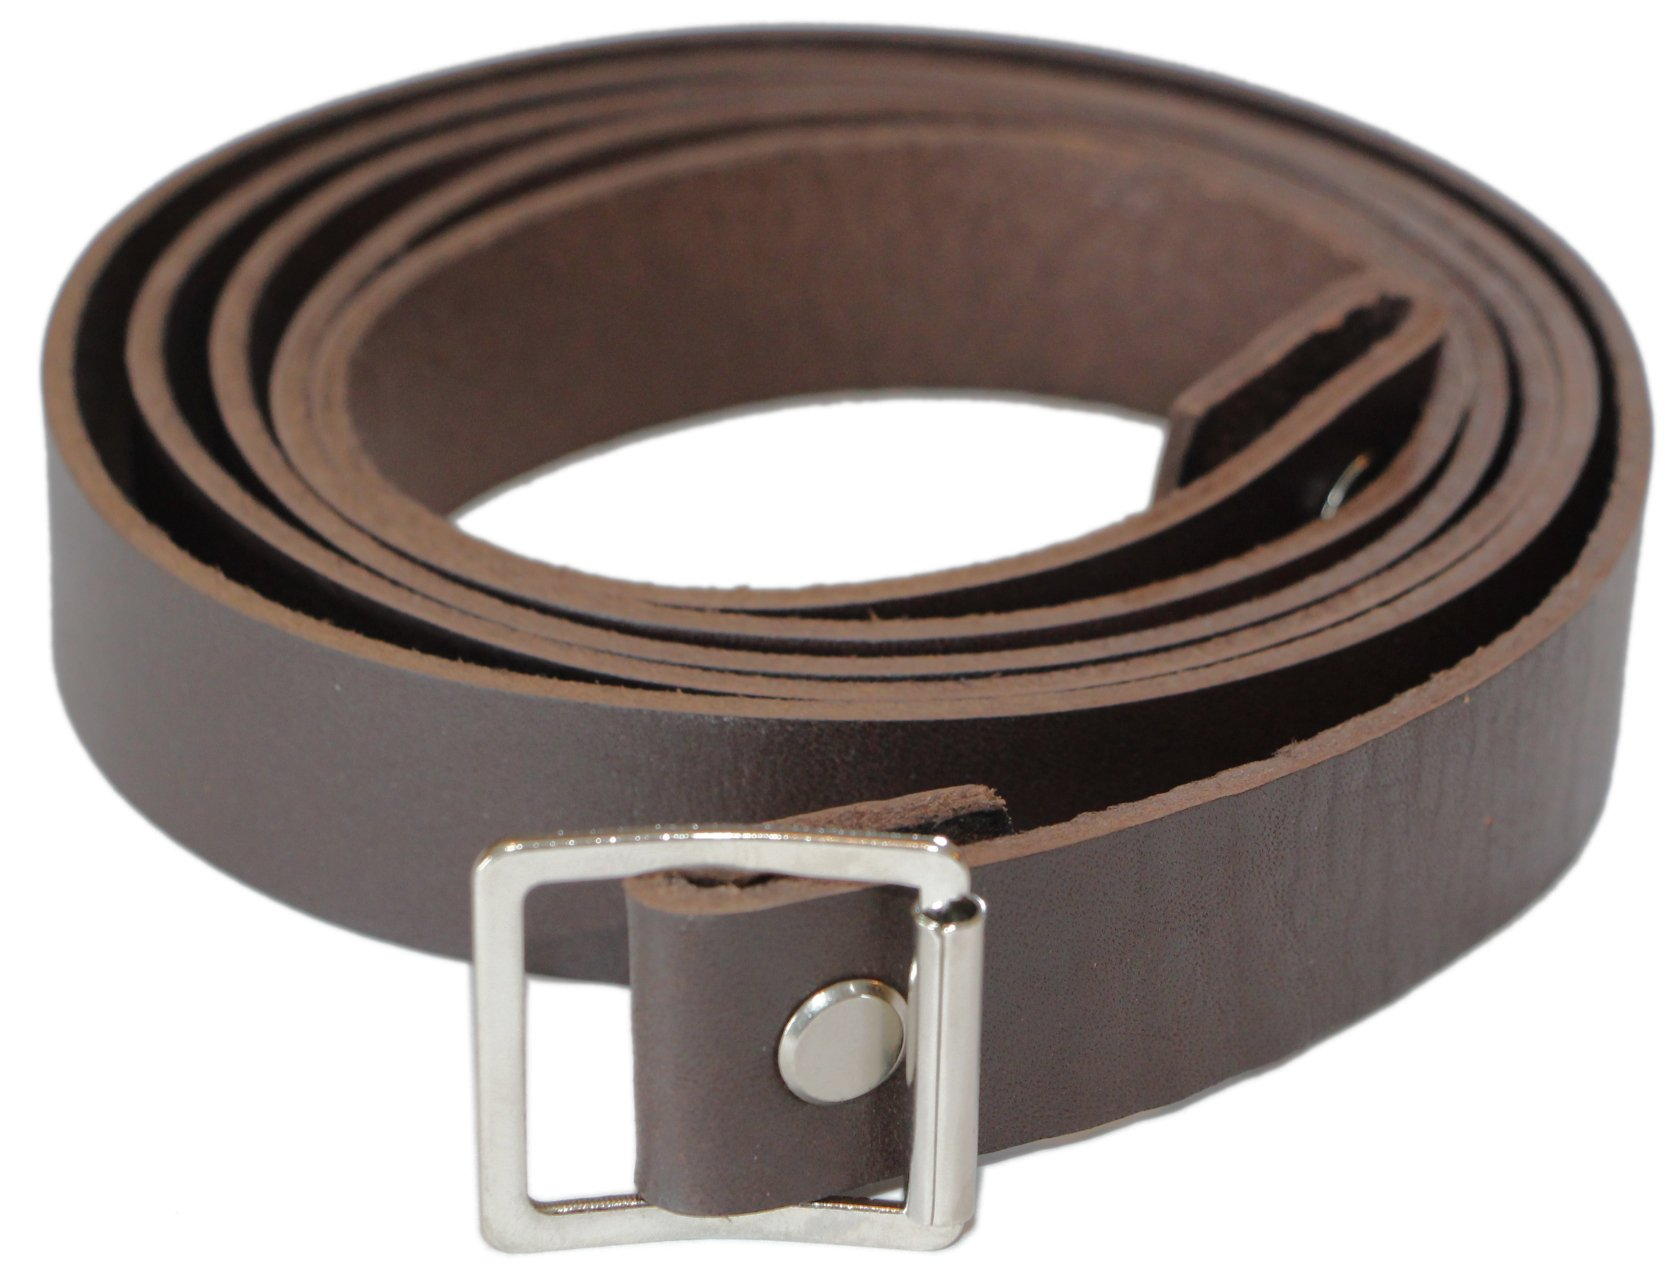 Indiana Jones Leather Bag Strap/Rifle Sling by Magnoli Clothiers (Dark Brown) by Magnoli Clothiers